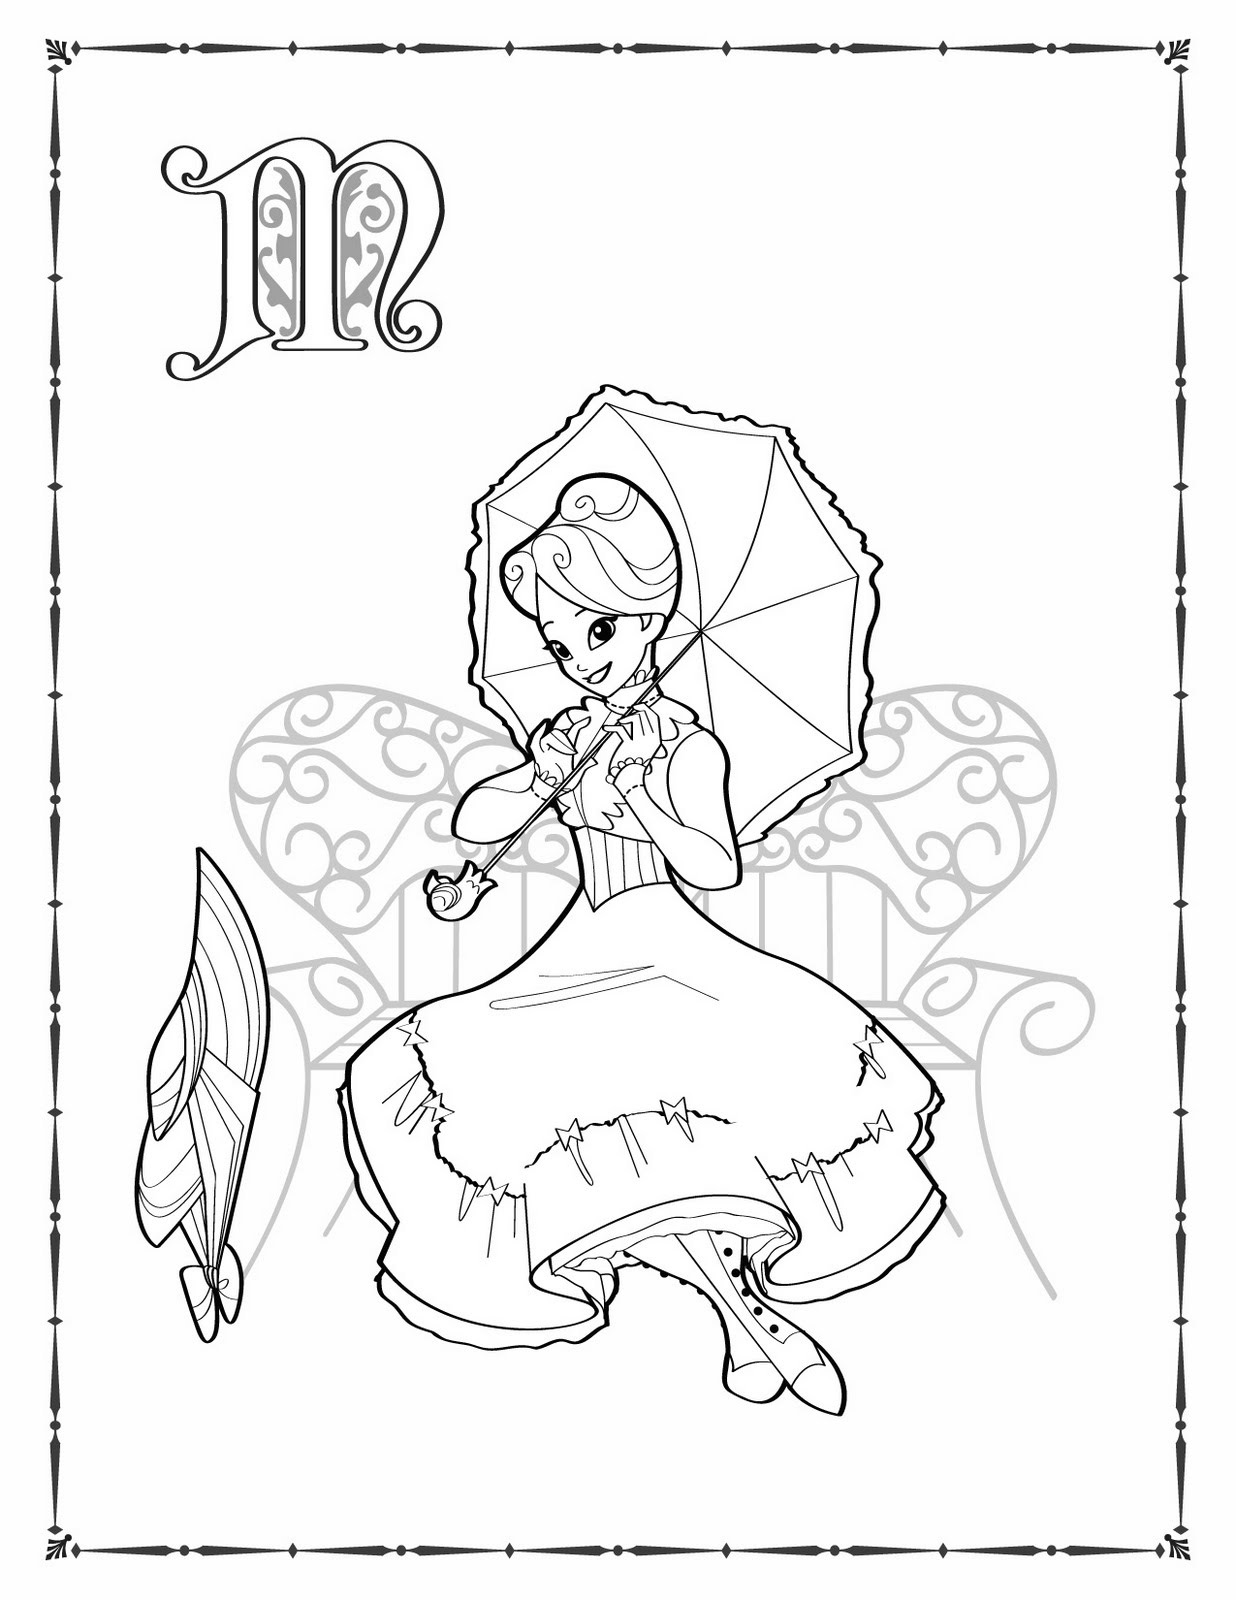 Mary Poppins Coloring Pages To Print Coloring Pages